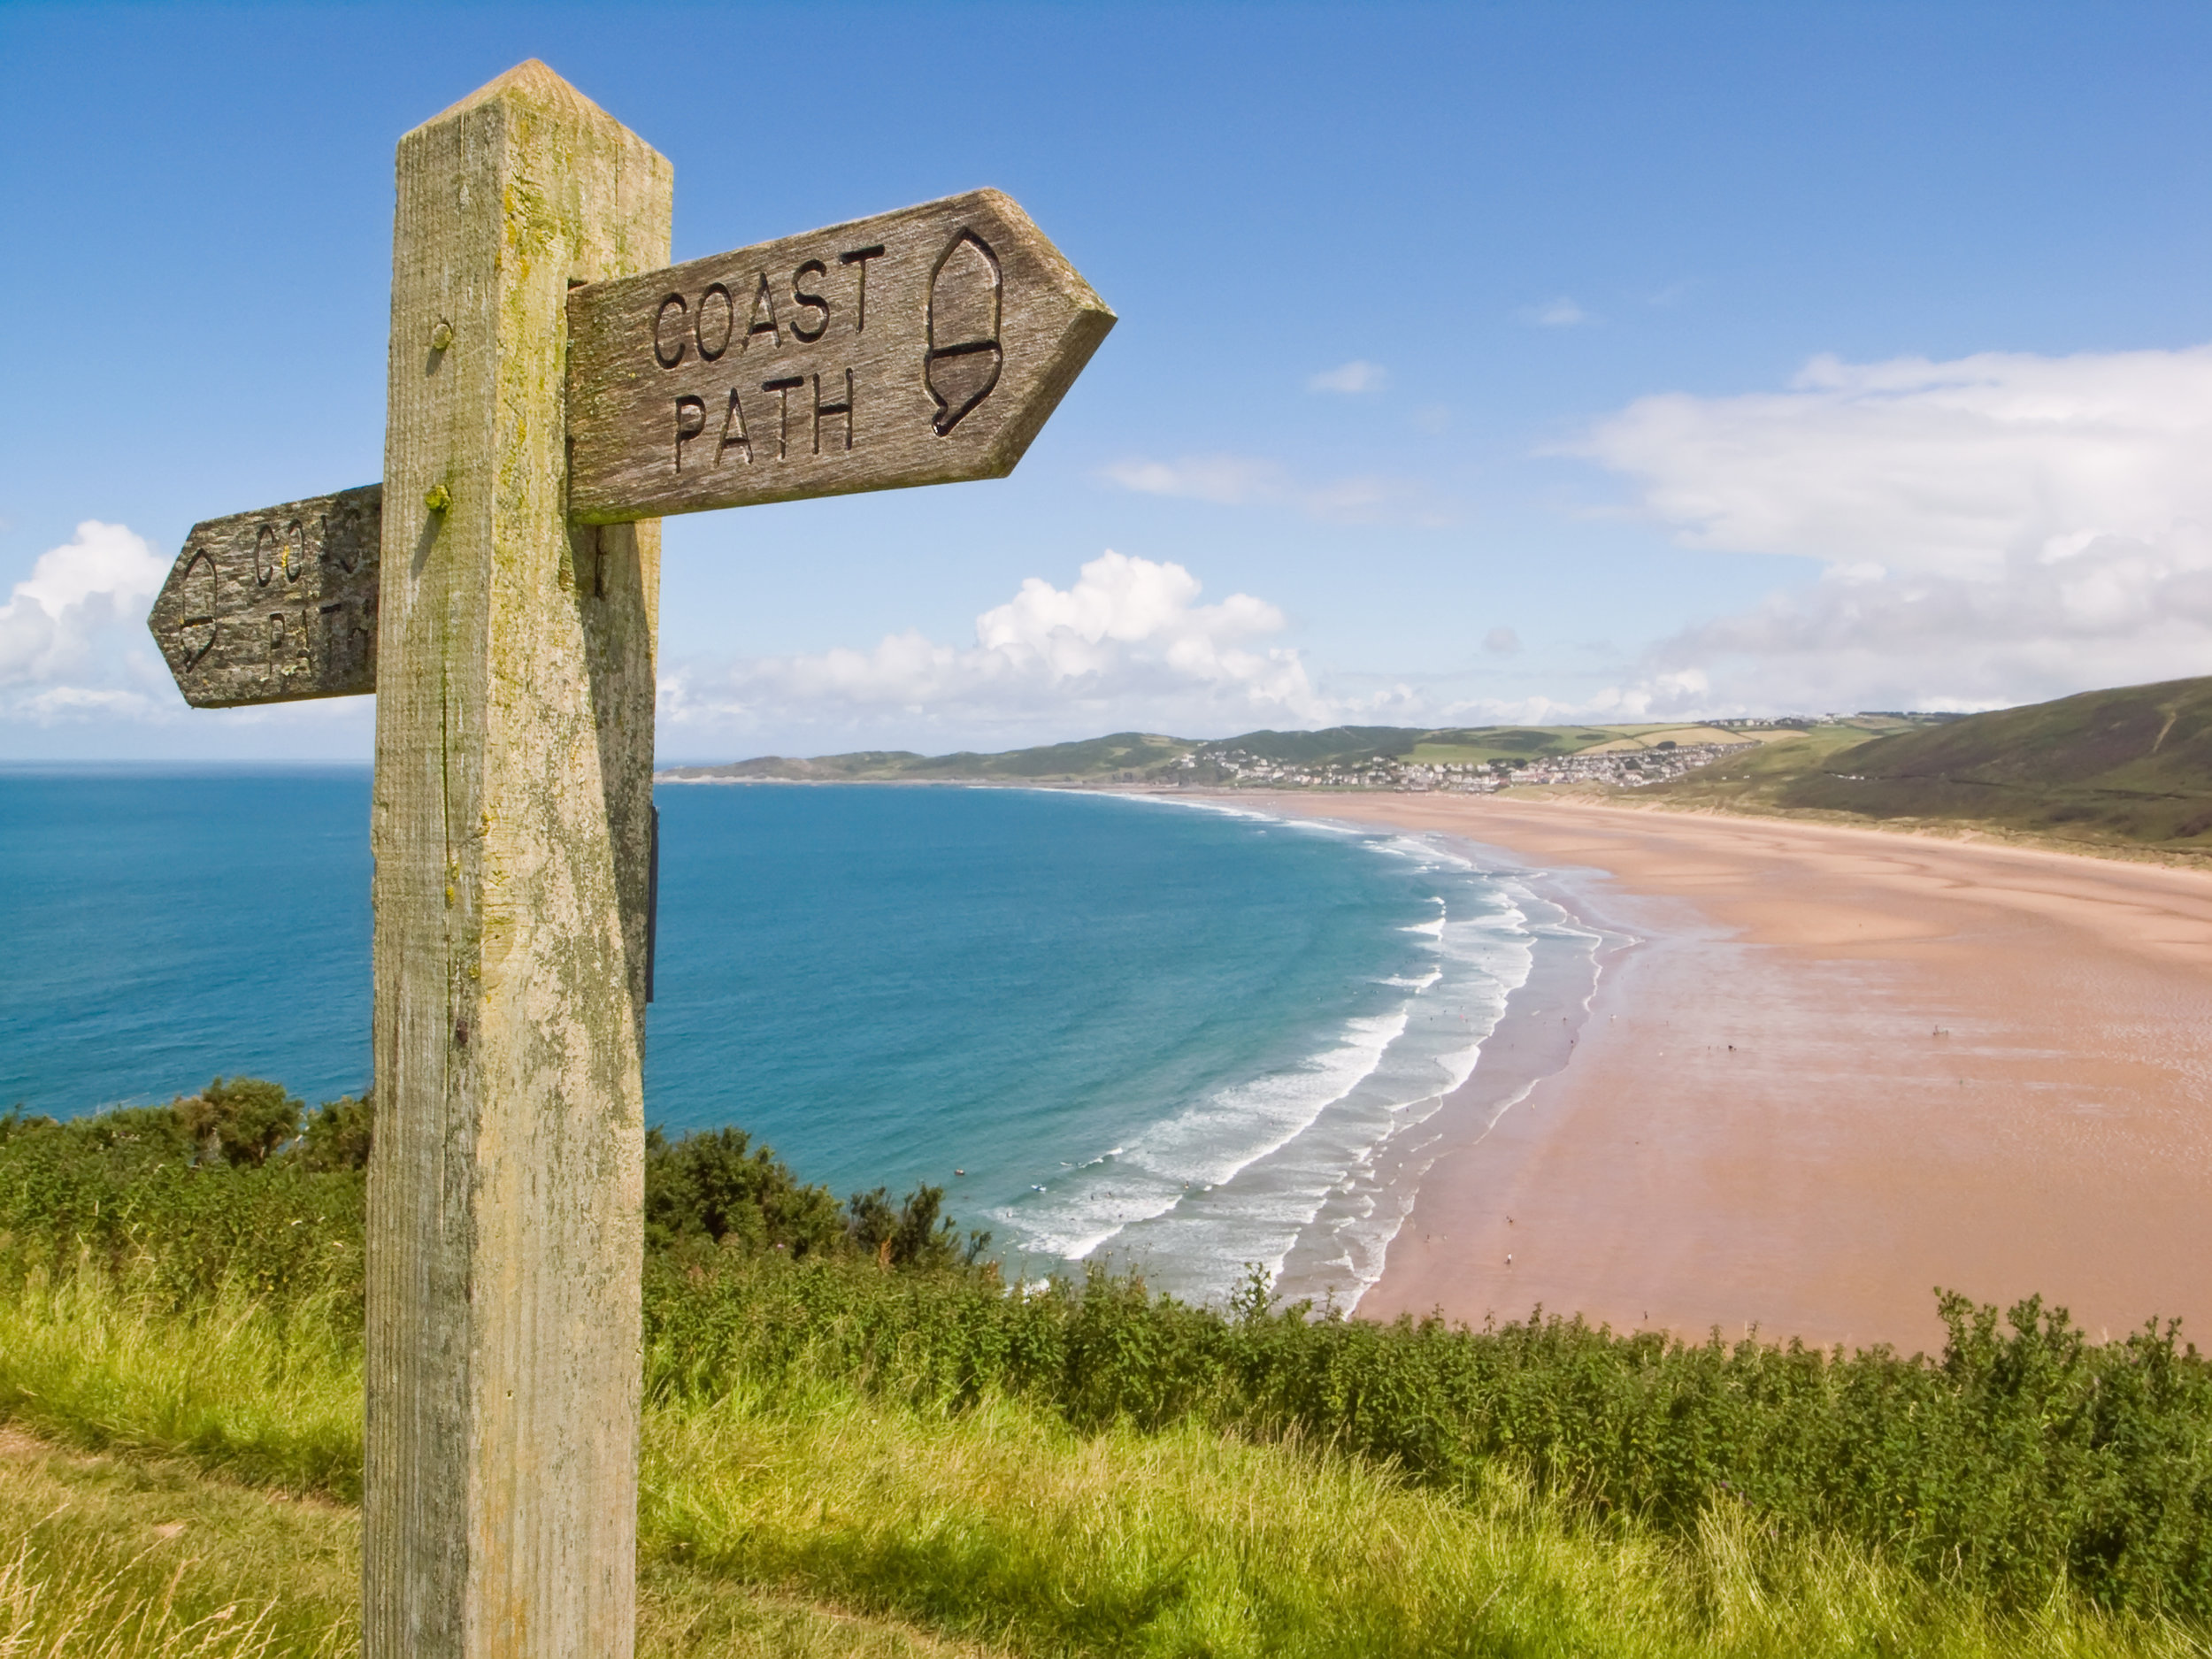 Surf Britain's best beaches - Join us for an unforgettable experience on the wonderful beaches of North Devon